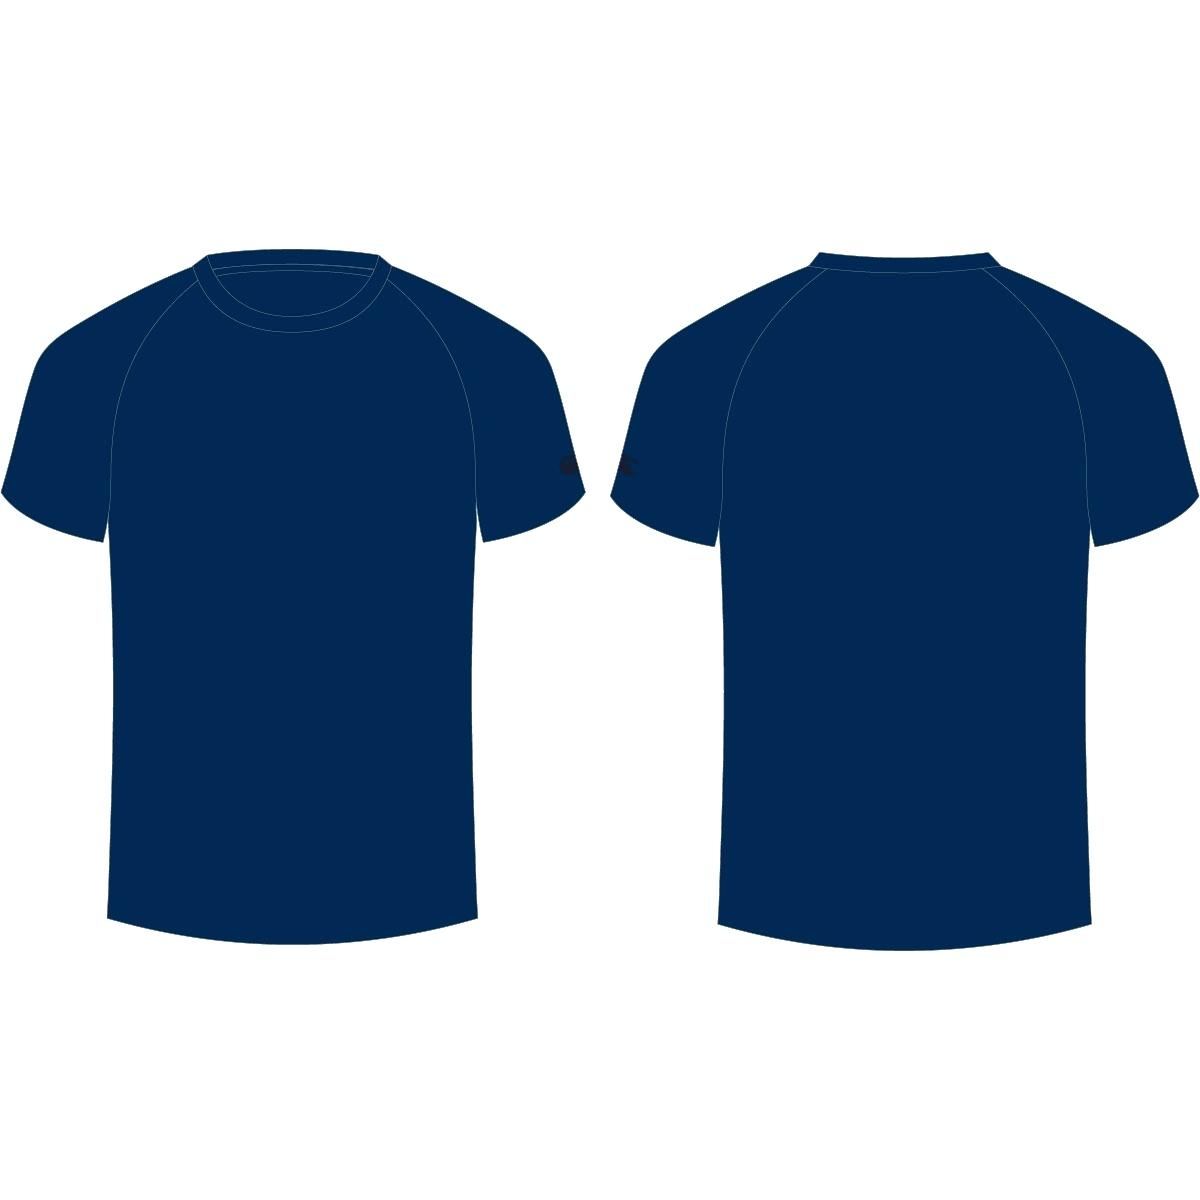 008 Template Ideas Color T Shirt Fetching Navy Blue Dark Pencil And.